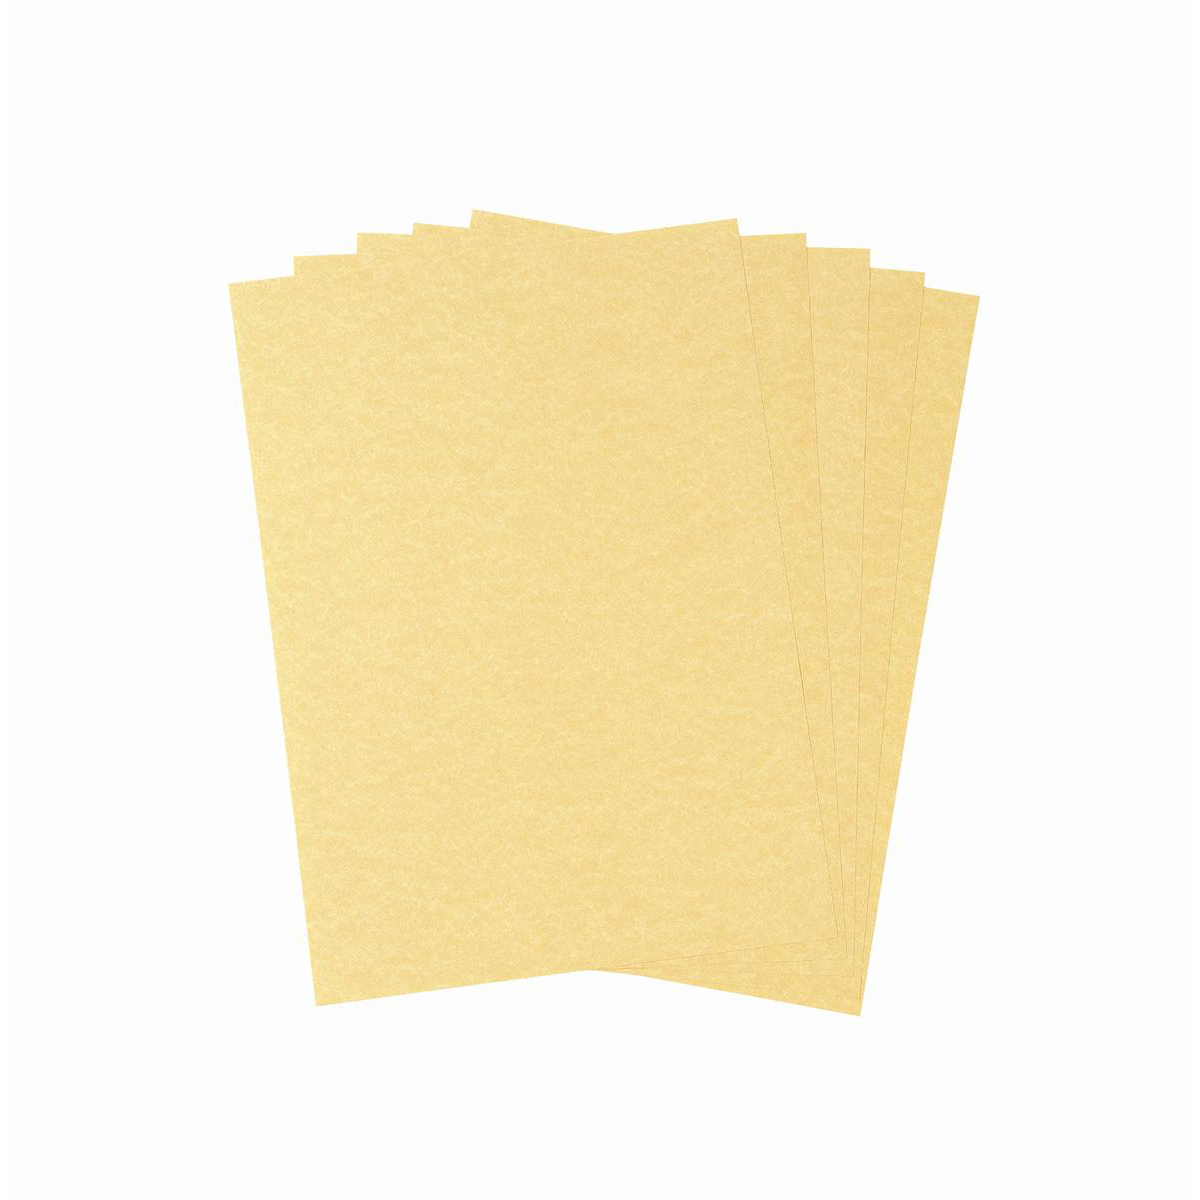 Letterhead / Presentation Parchment Letterhead and Presentation Paper 95gsm A4 Gold 100 Sheets